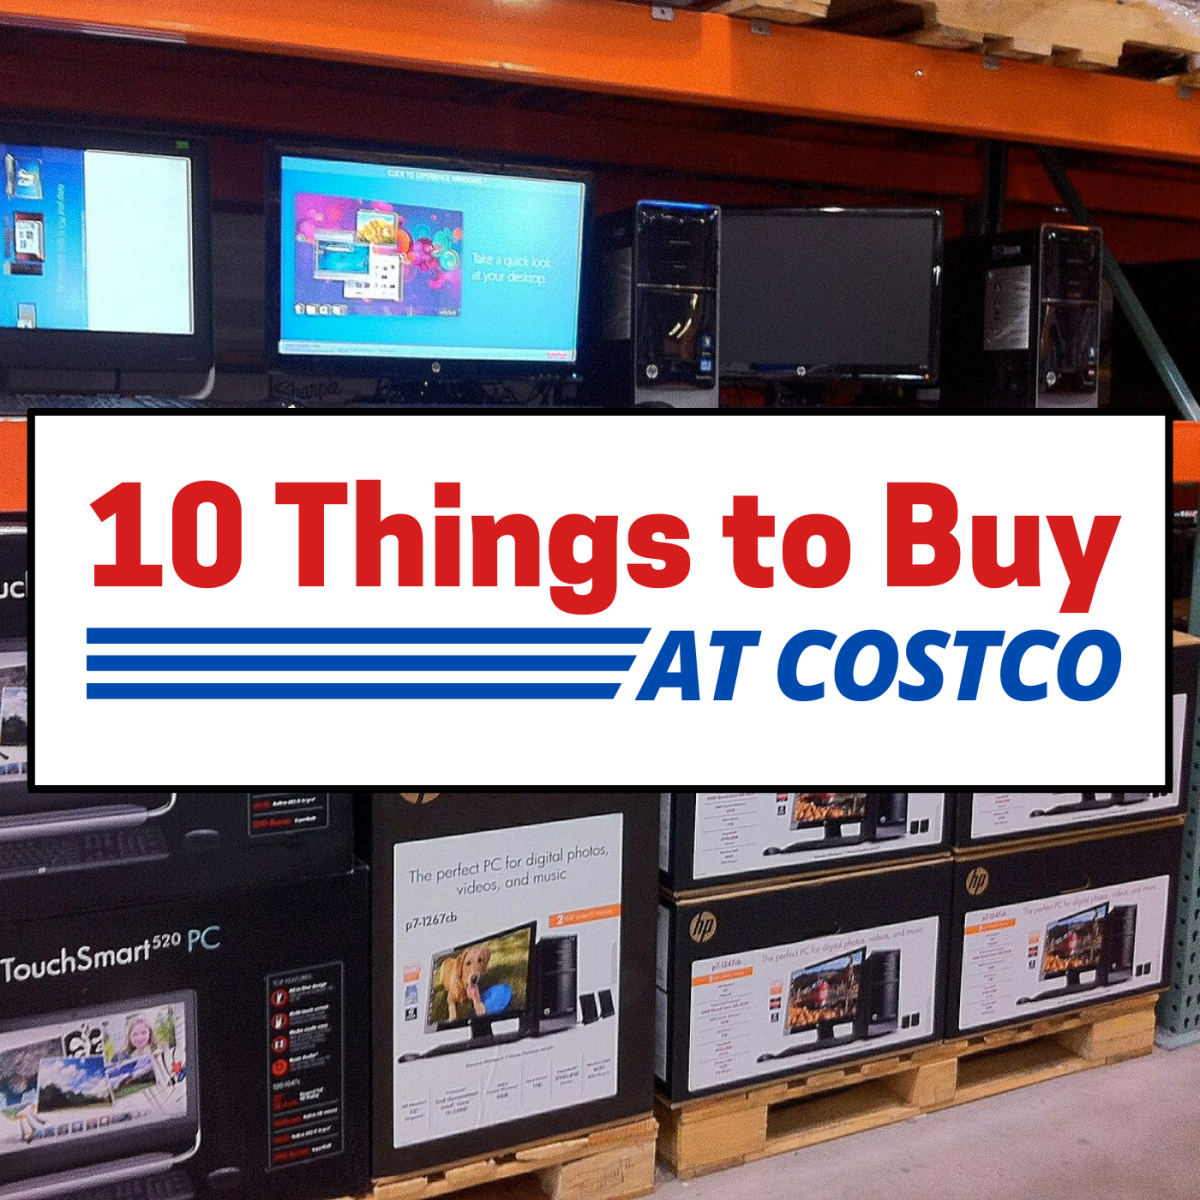 10 Things You Should Buy at Costco to Save Money